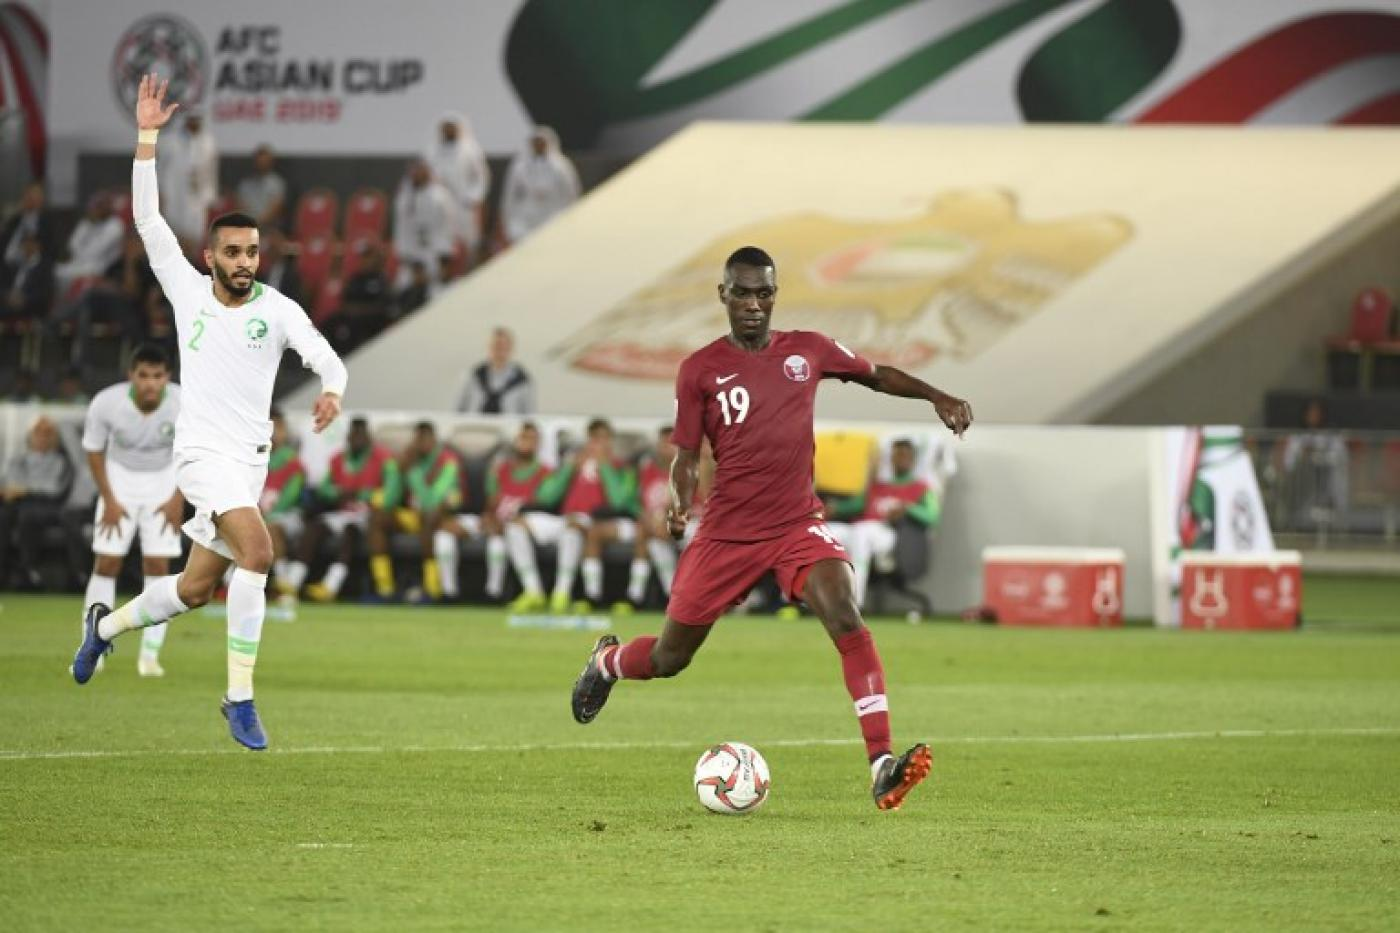 Asian Cup: Qatar beats Saudi Arabia in first meeting on pitch since